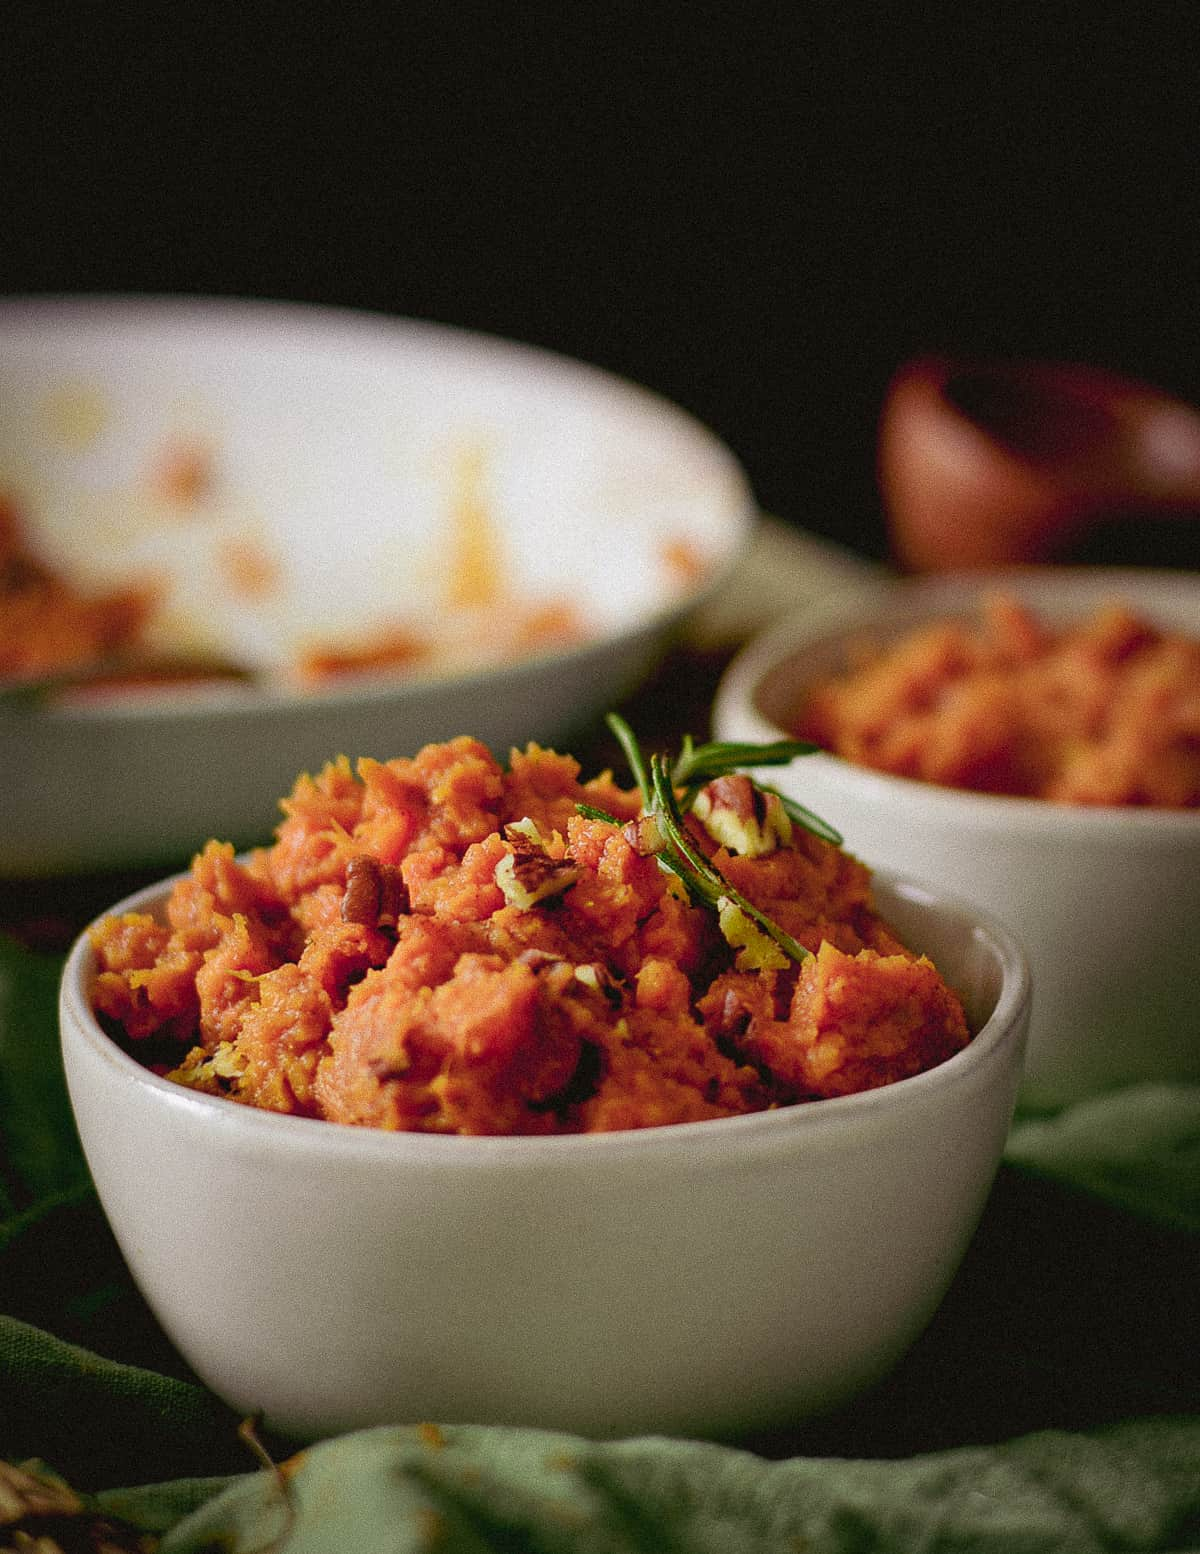 Mashed sweet potatoes in small bowl.